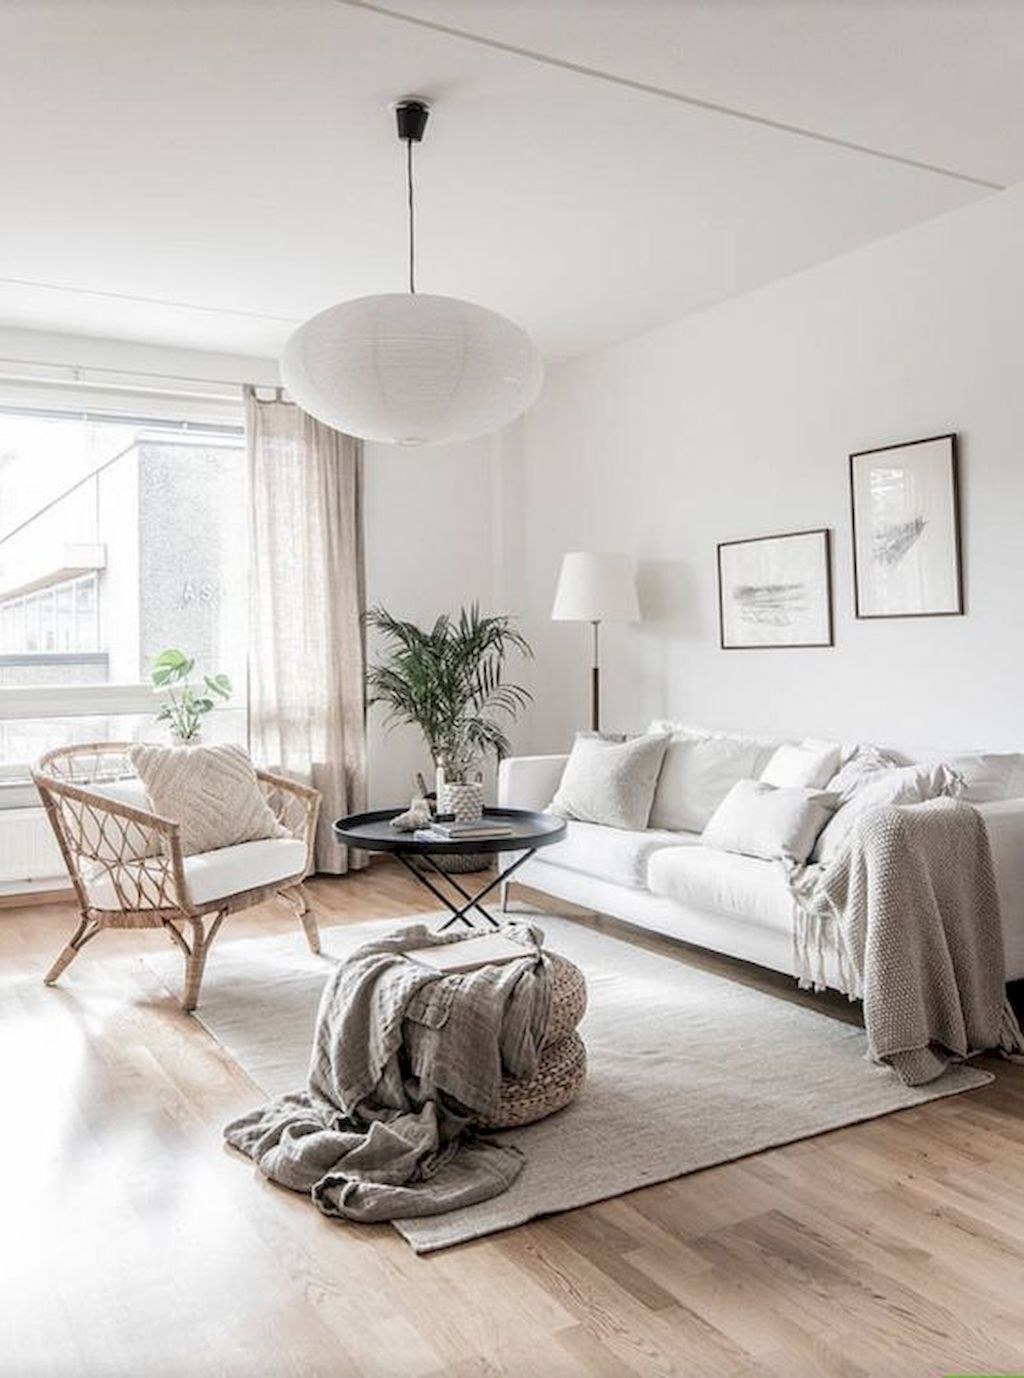 30 Gorgeous Scandinavian Living Room Decoration Ideas Searchomee In 2020 Small Apartment Living Room Living Room Scandinavian Bright Living Room #scandi #living #room #decor